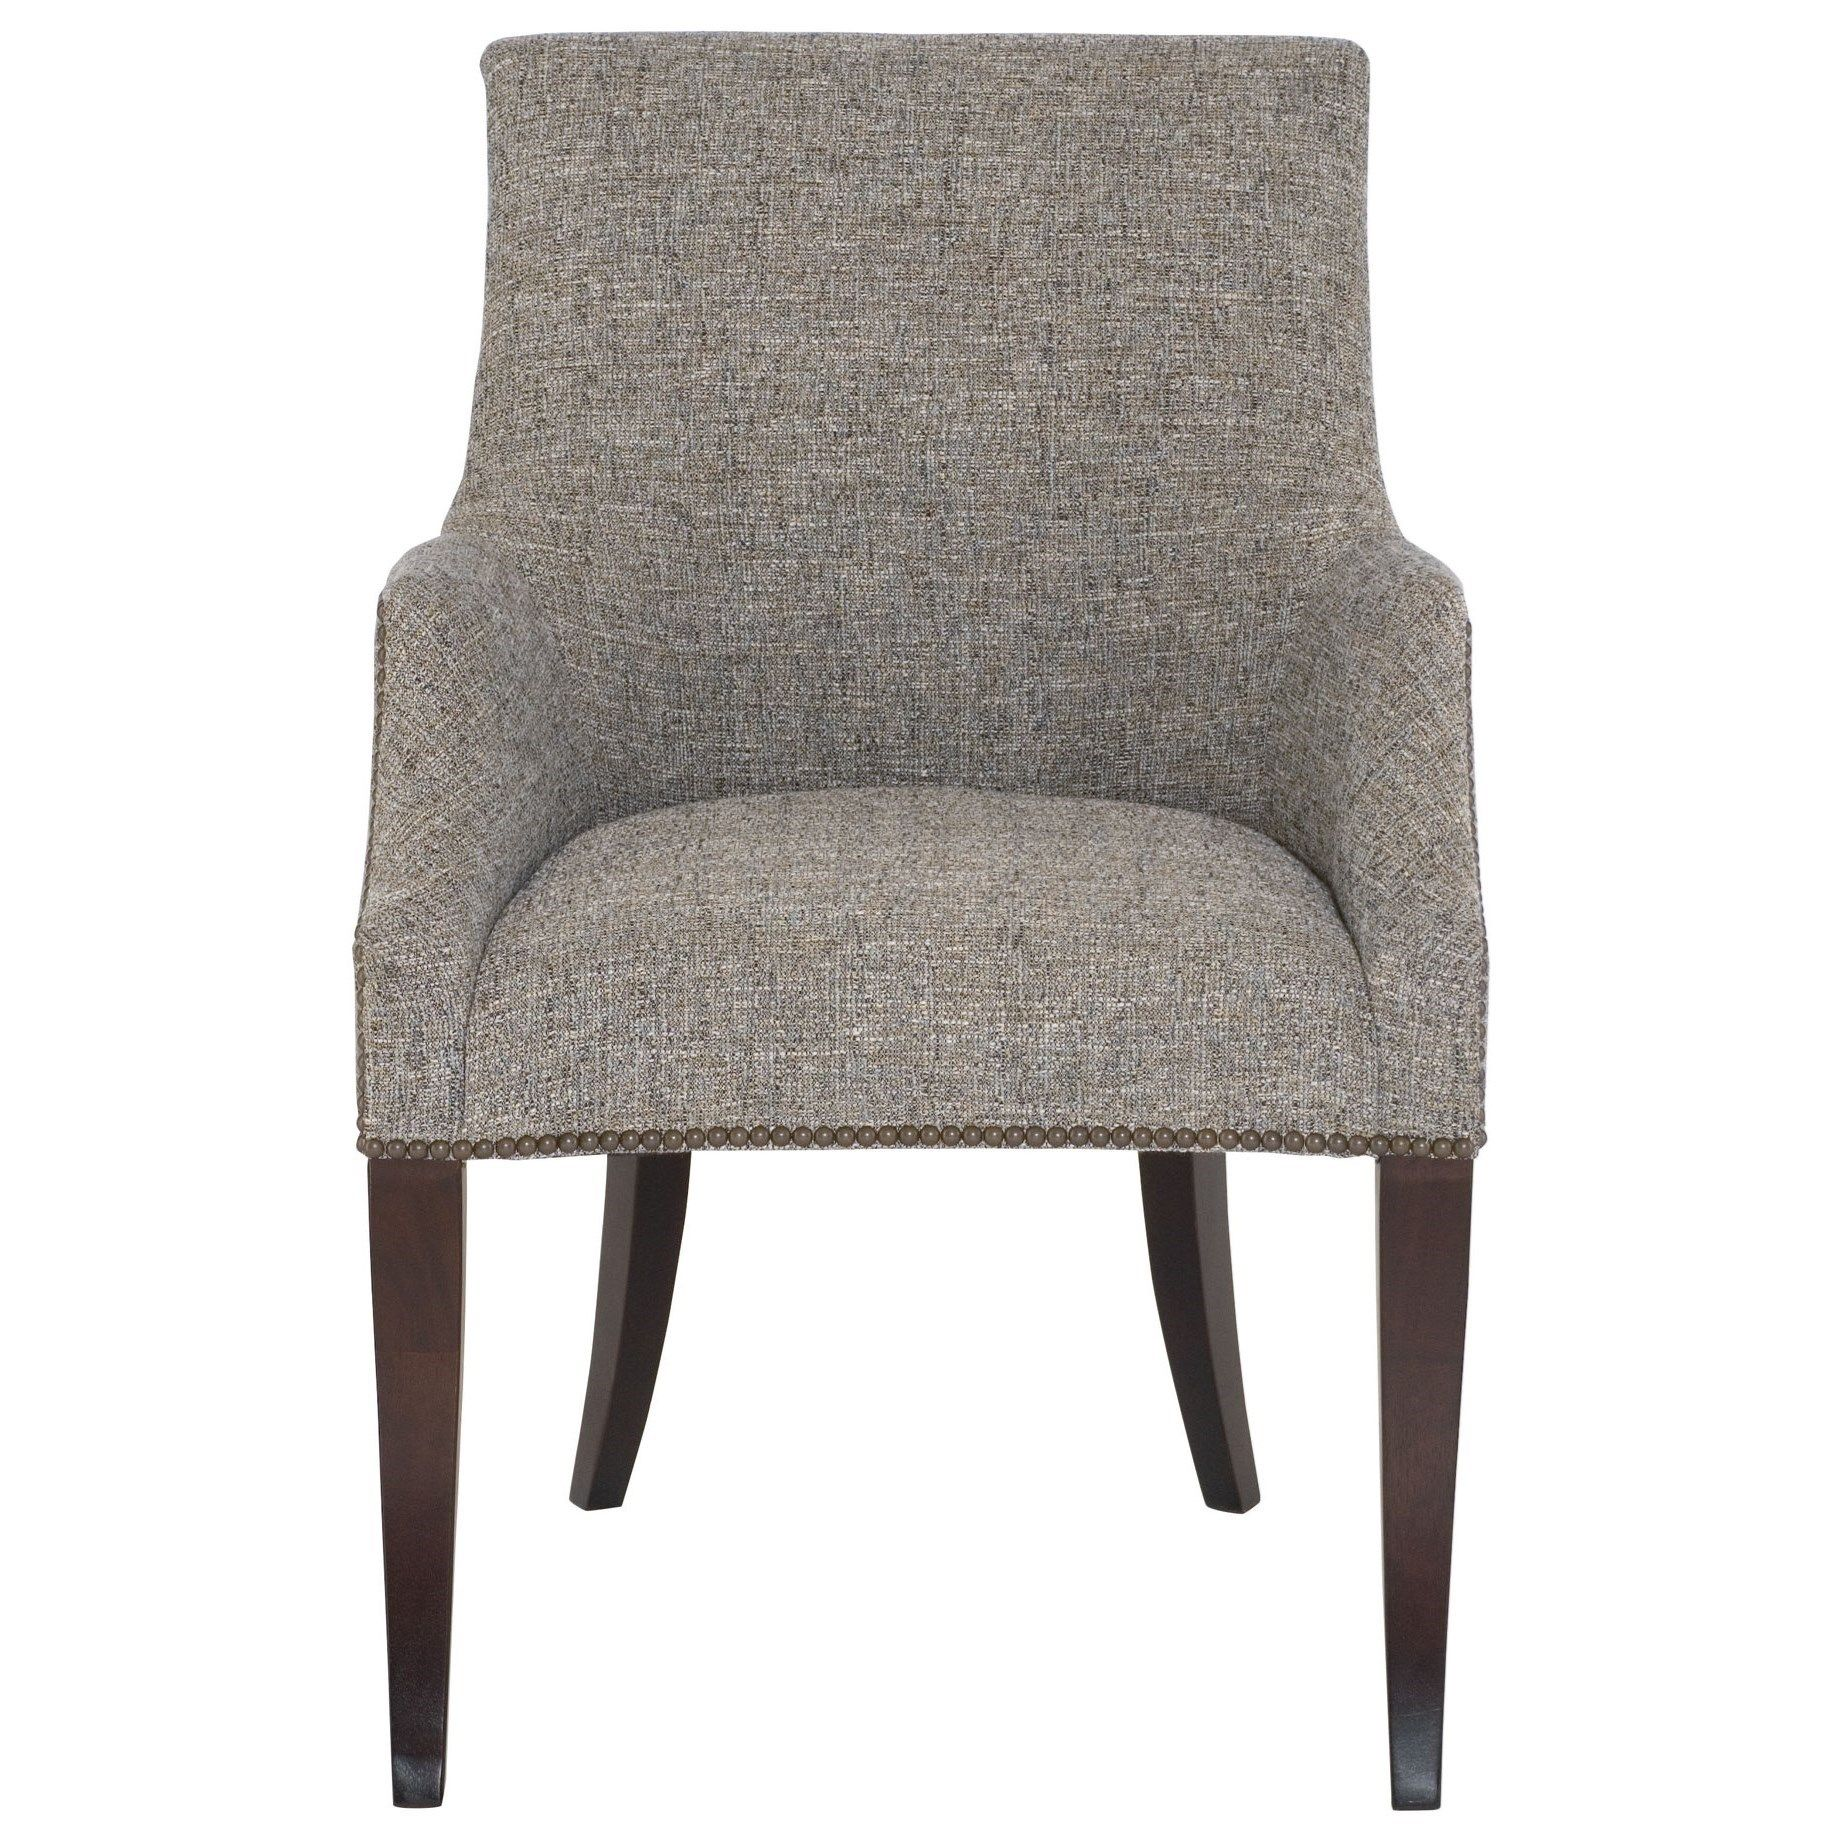 Keeley Upholstered Dining Arm Chair With Nail Head Trim By